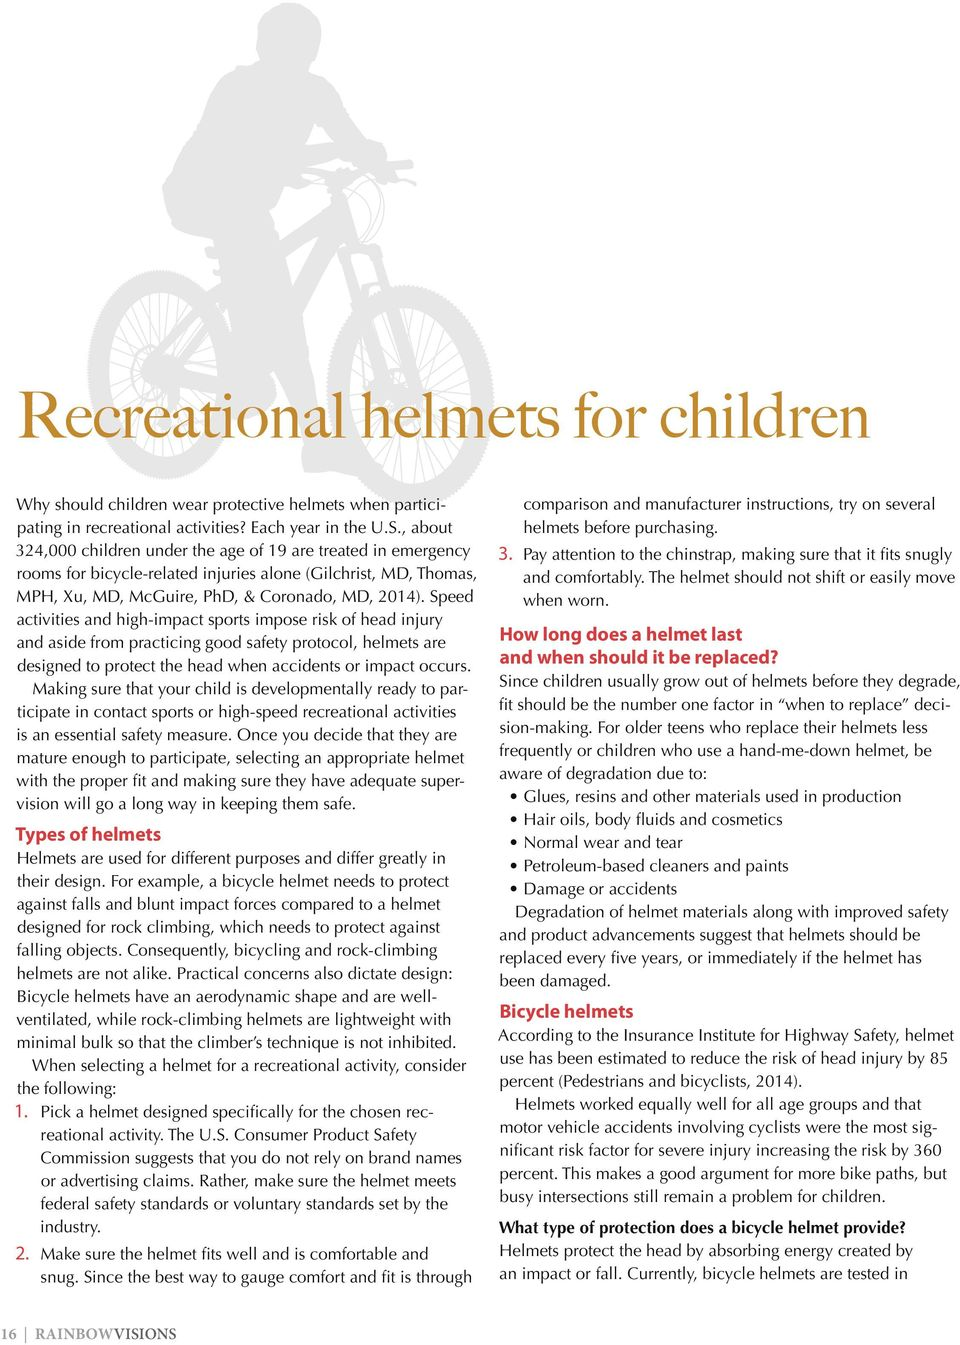 Speed activities and high-impact sports impose risk of head injury and aside from practicing good safety protocol, helmets are designed to protect the head when accidents or impact occurs.